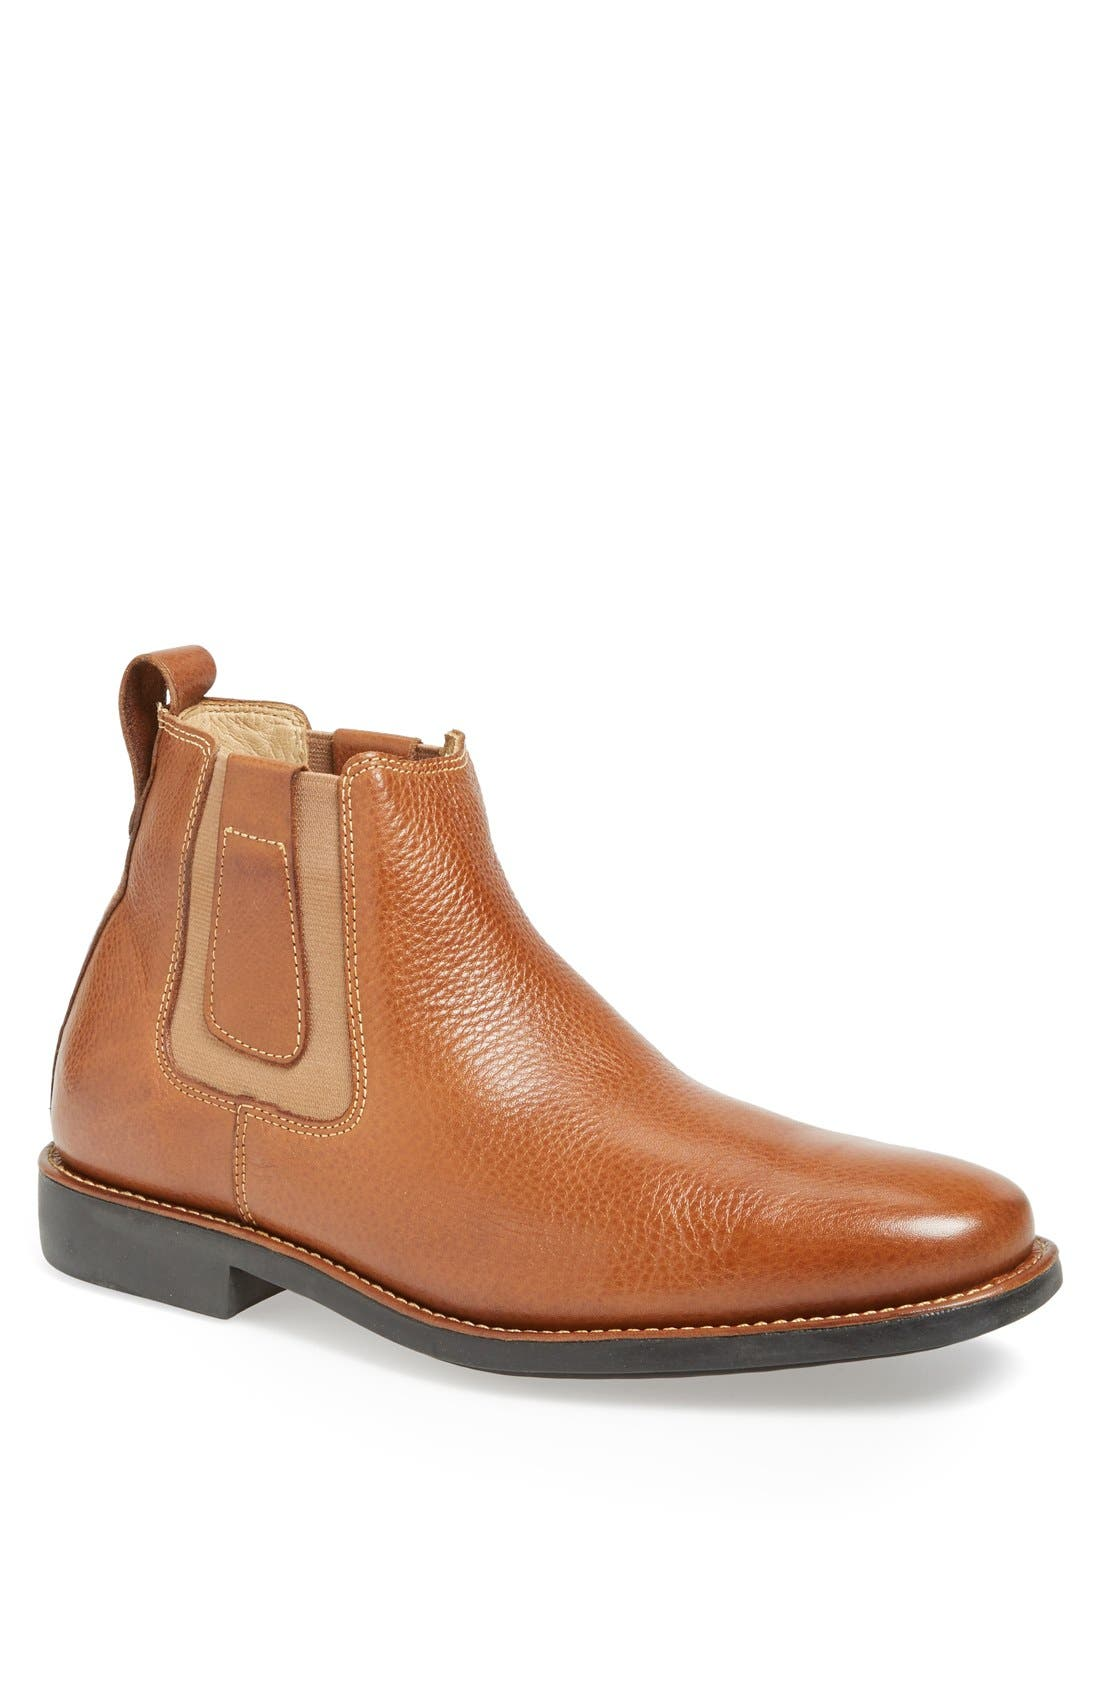 ANATOMIC & CO Natal Chelsea Boot